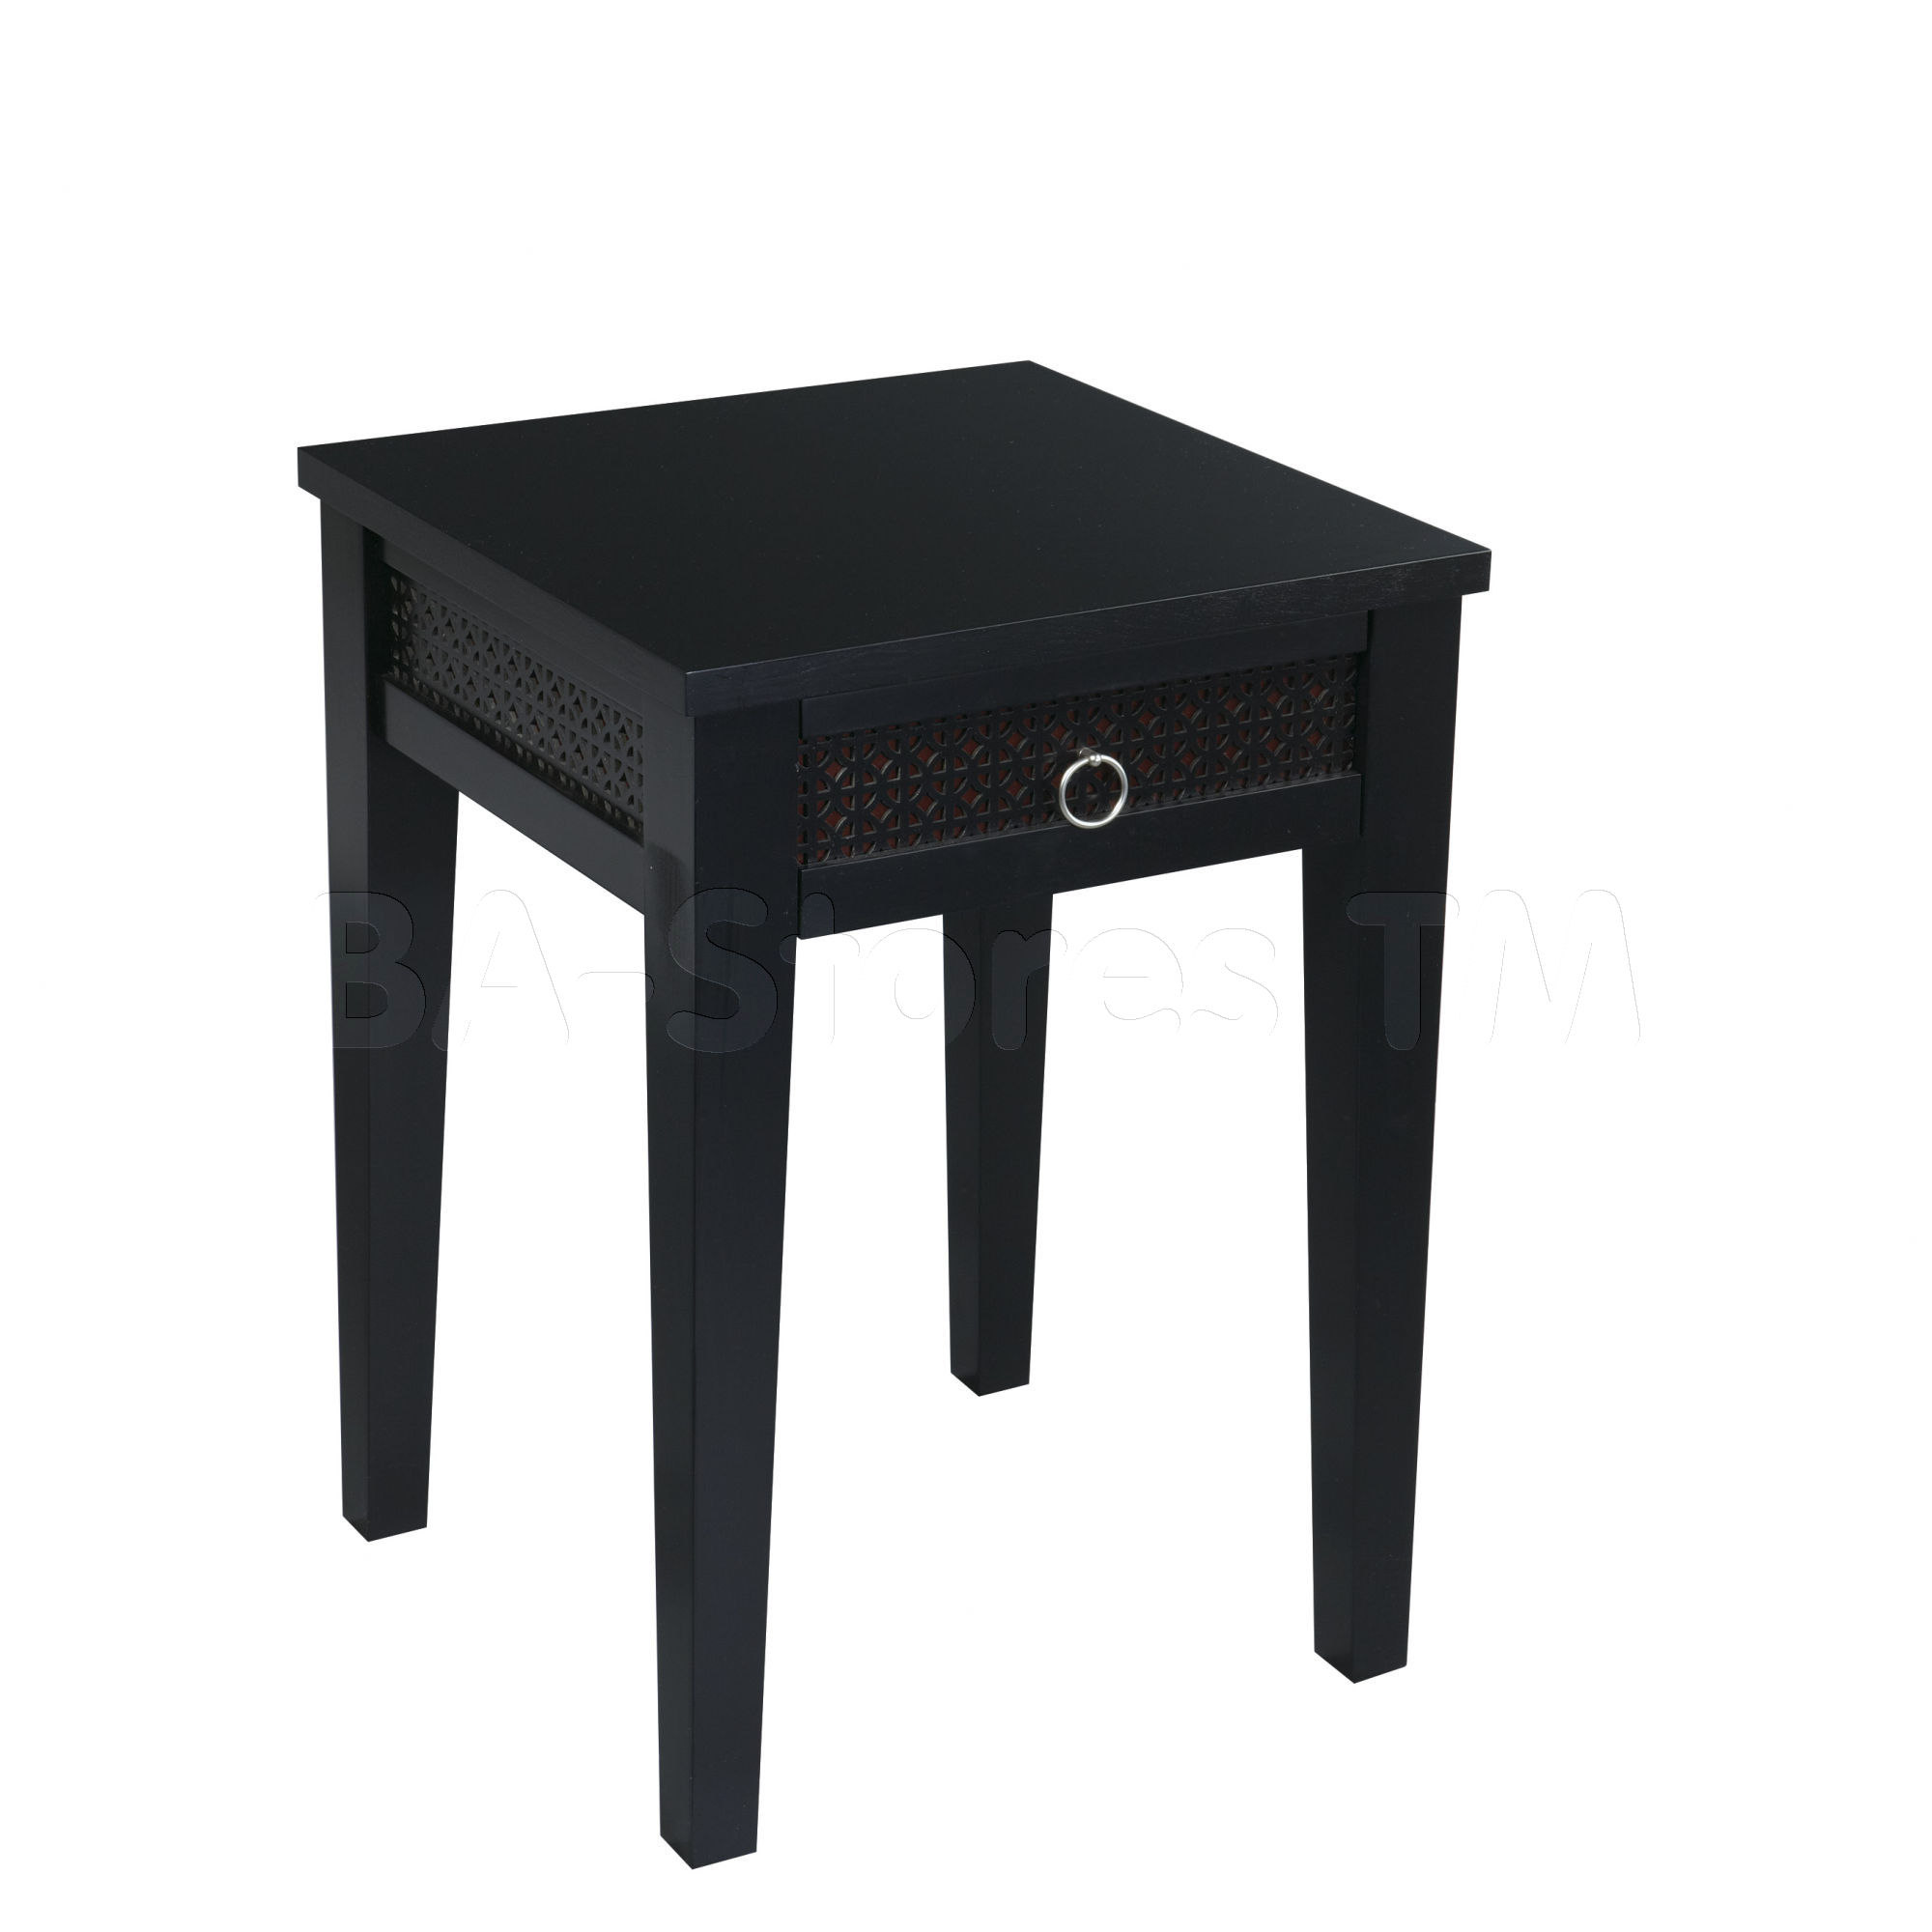 winsome small round accent table wood depot plans plaza unfinished road home and woodland metal wooden kitc oak roseville side glass woodcreek top gumtree chairs dining pedestal